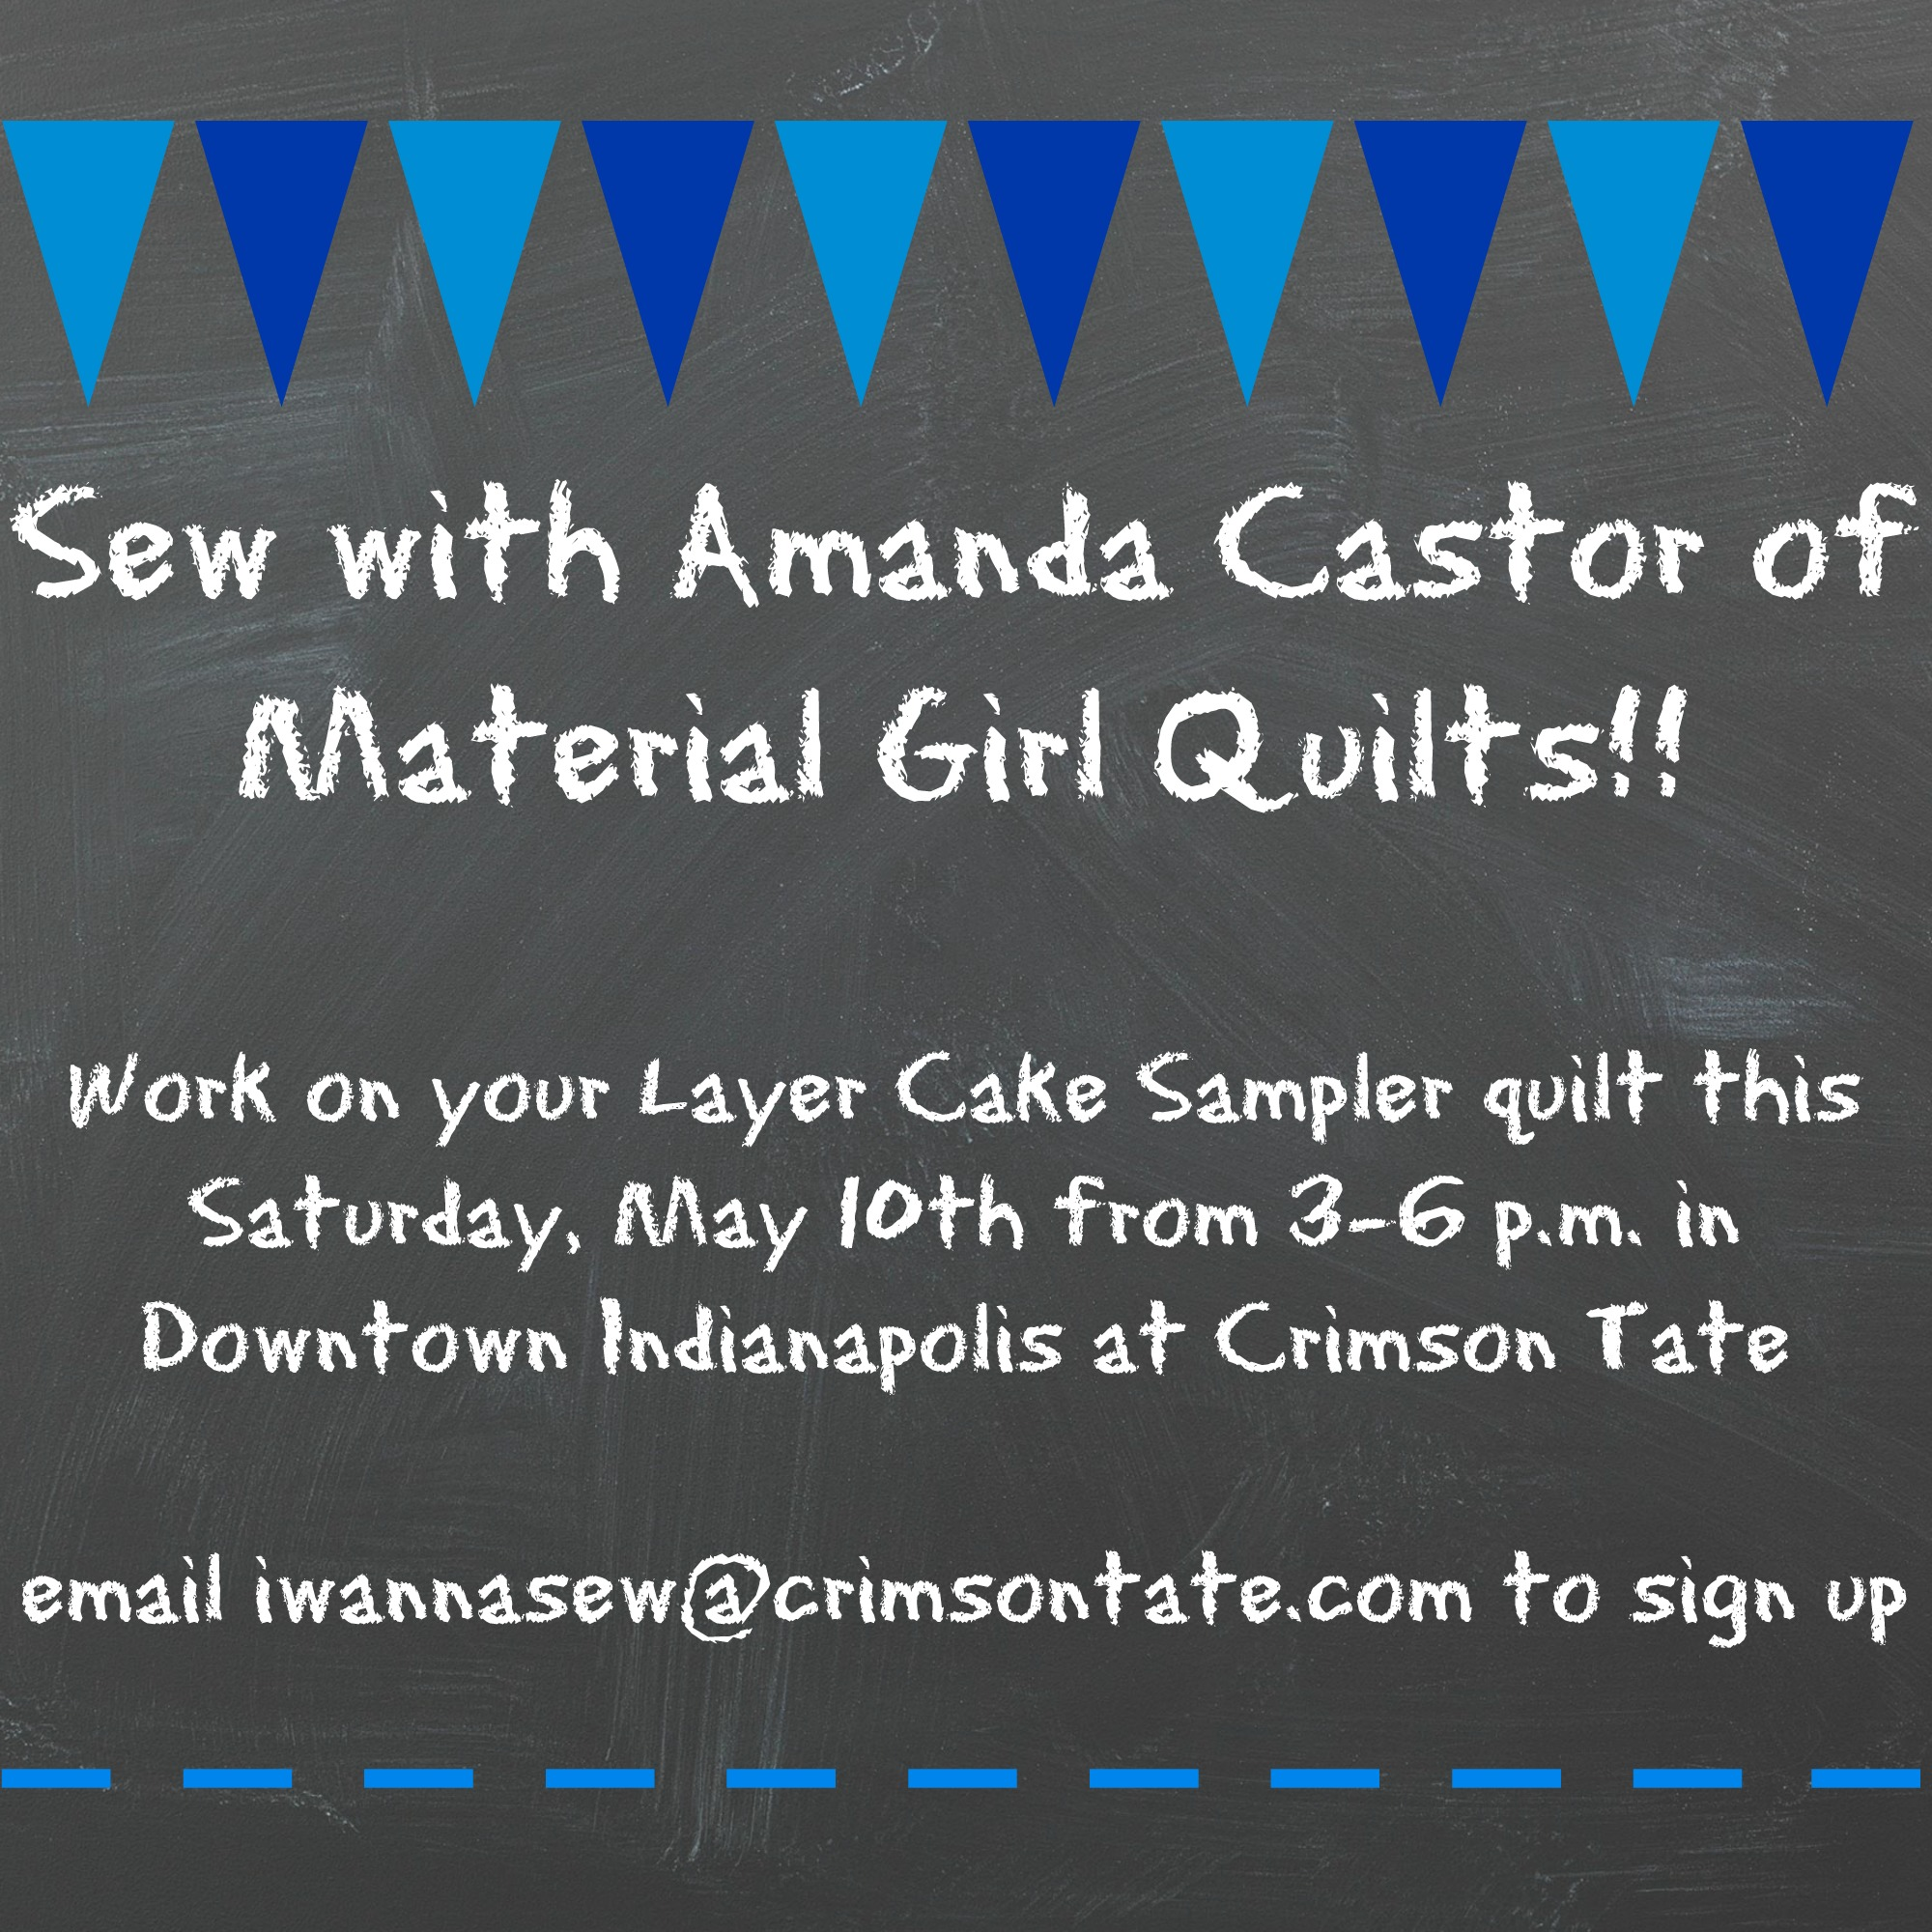 sew-with-material-girl-quilts.jpg